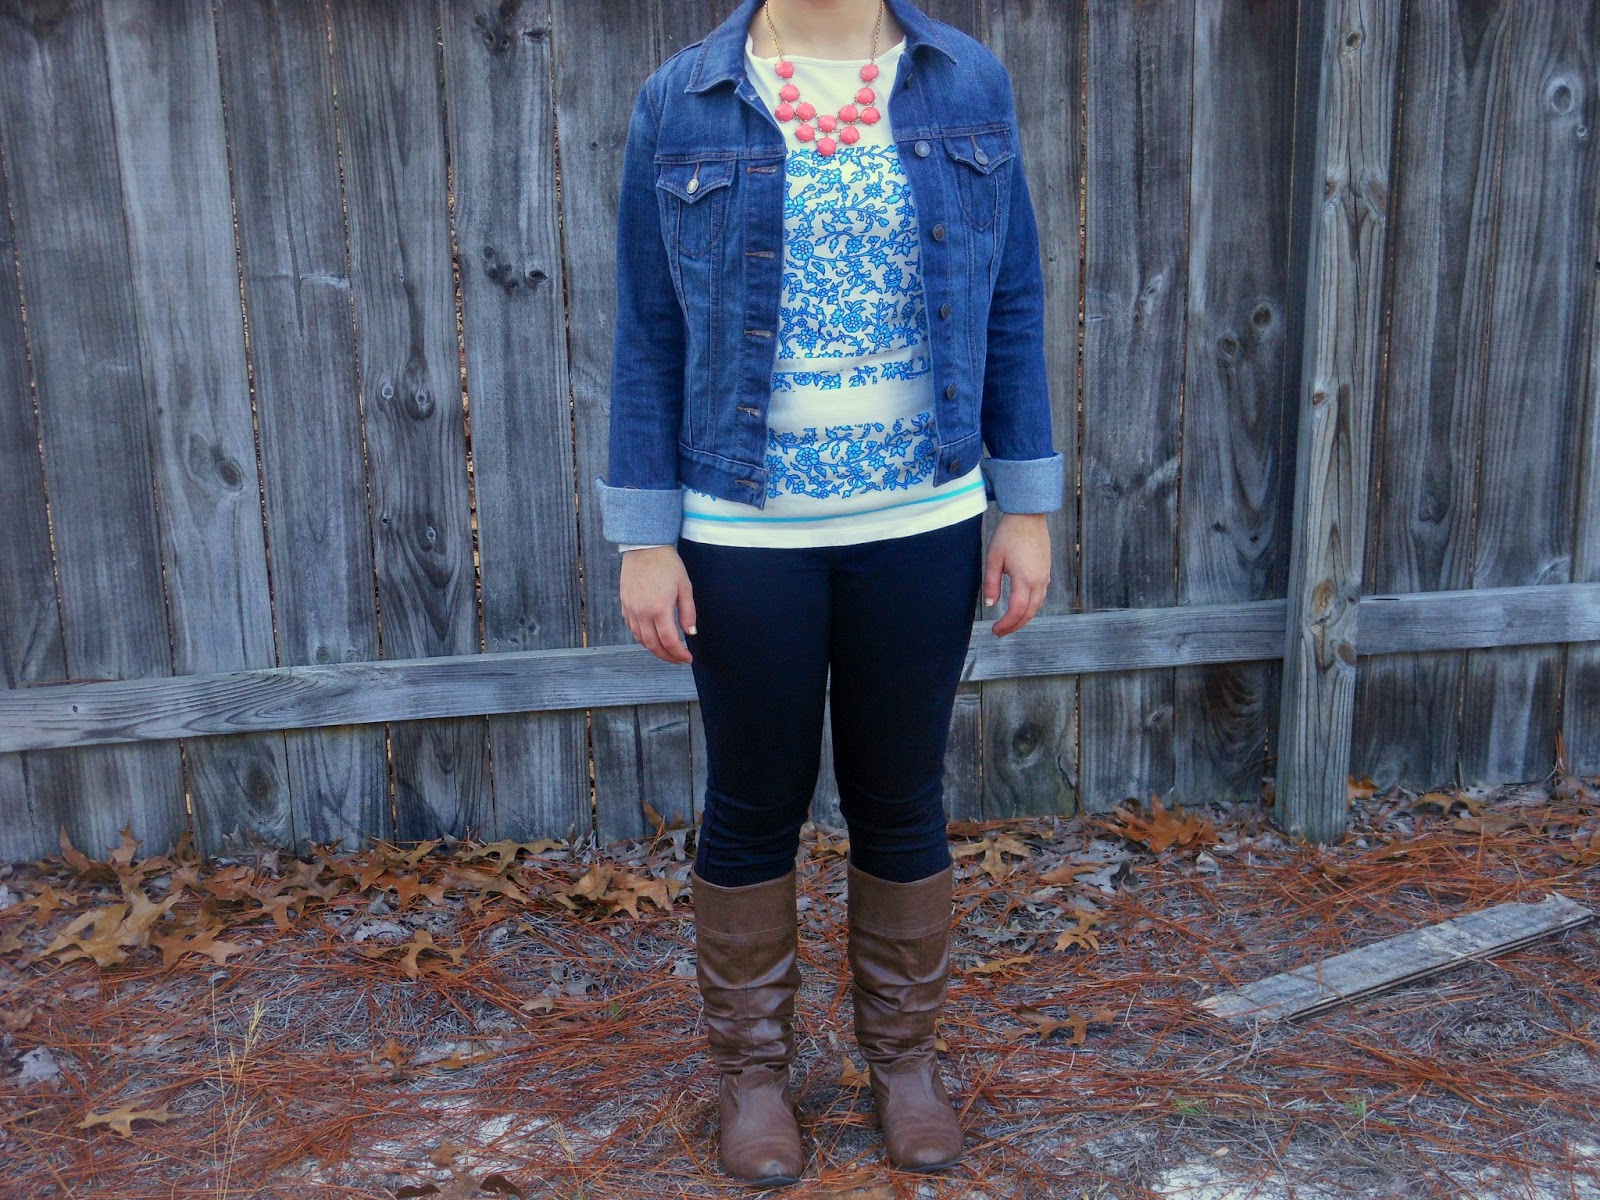 Coral and Bright Blue. Blue patterned top, black skinnies, coral necklace, jean jacket, brown boots